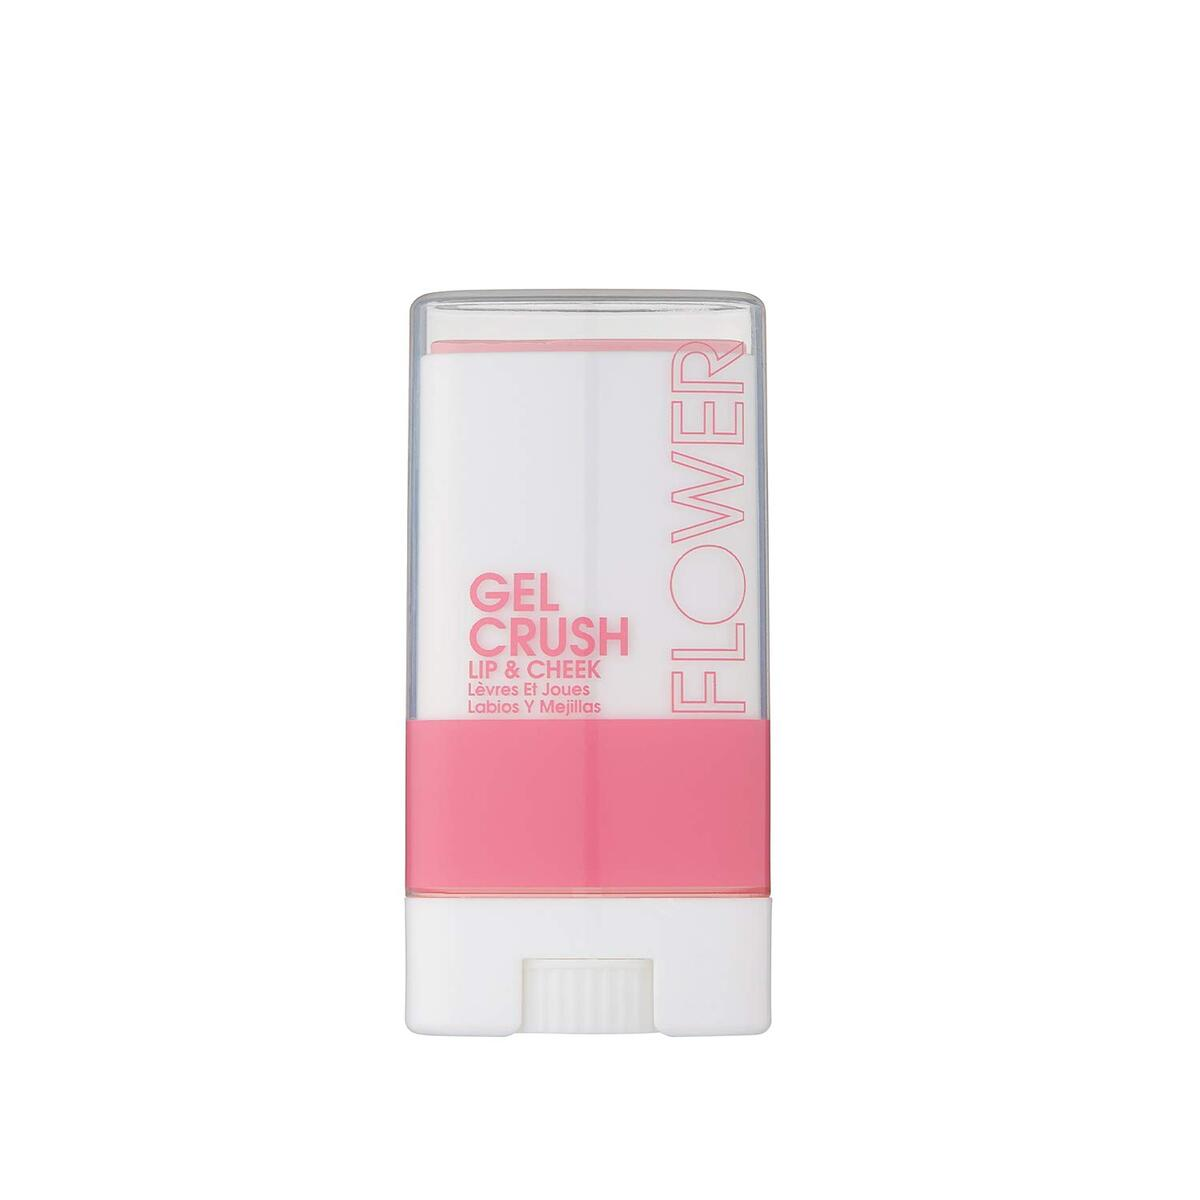 FLOWER BEAUTY Gel Crush Lip & Cheek - Strawberry Crush